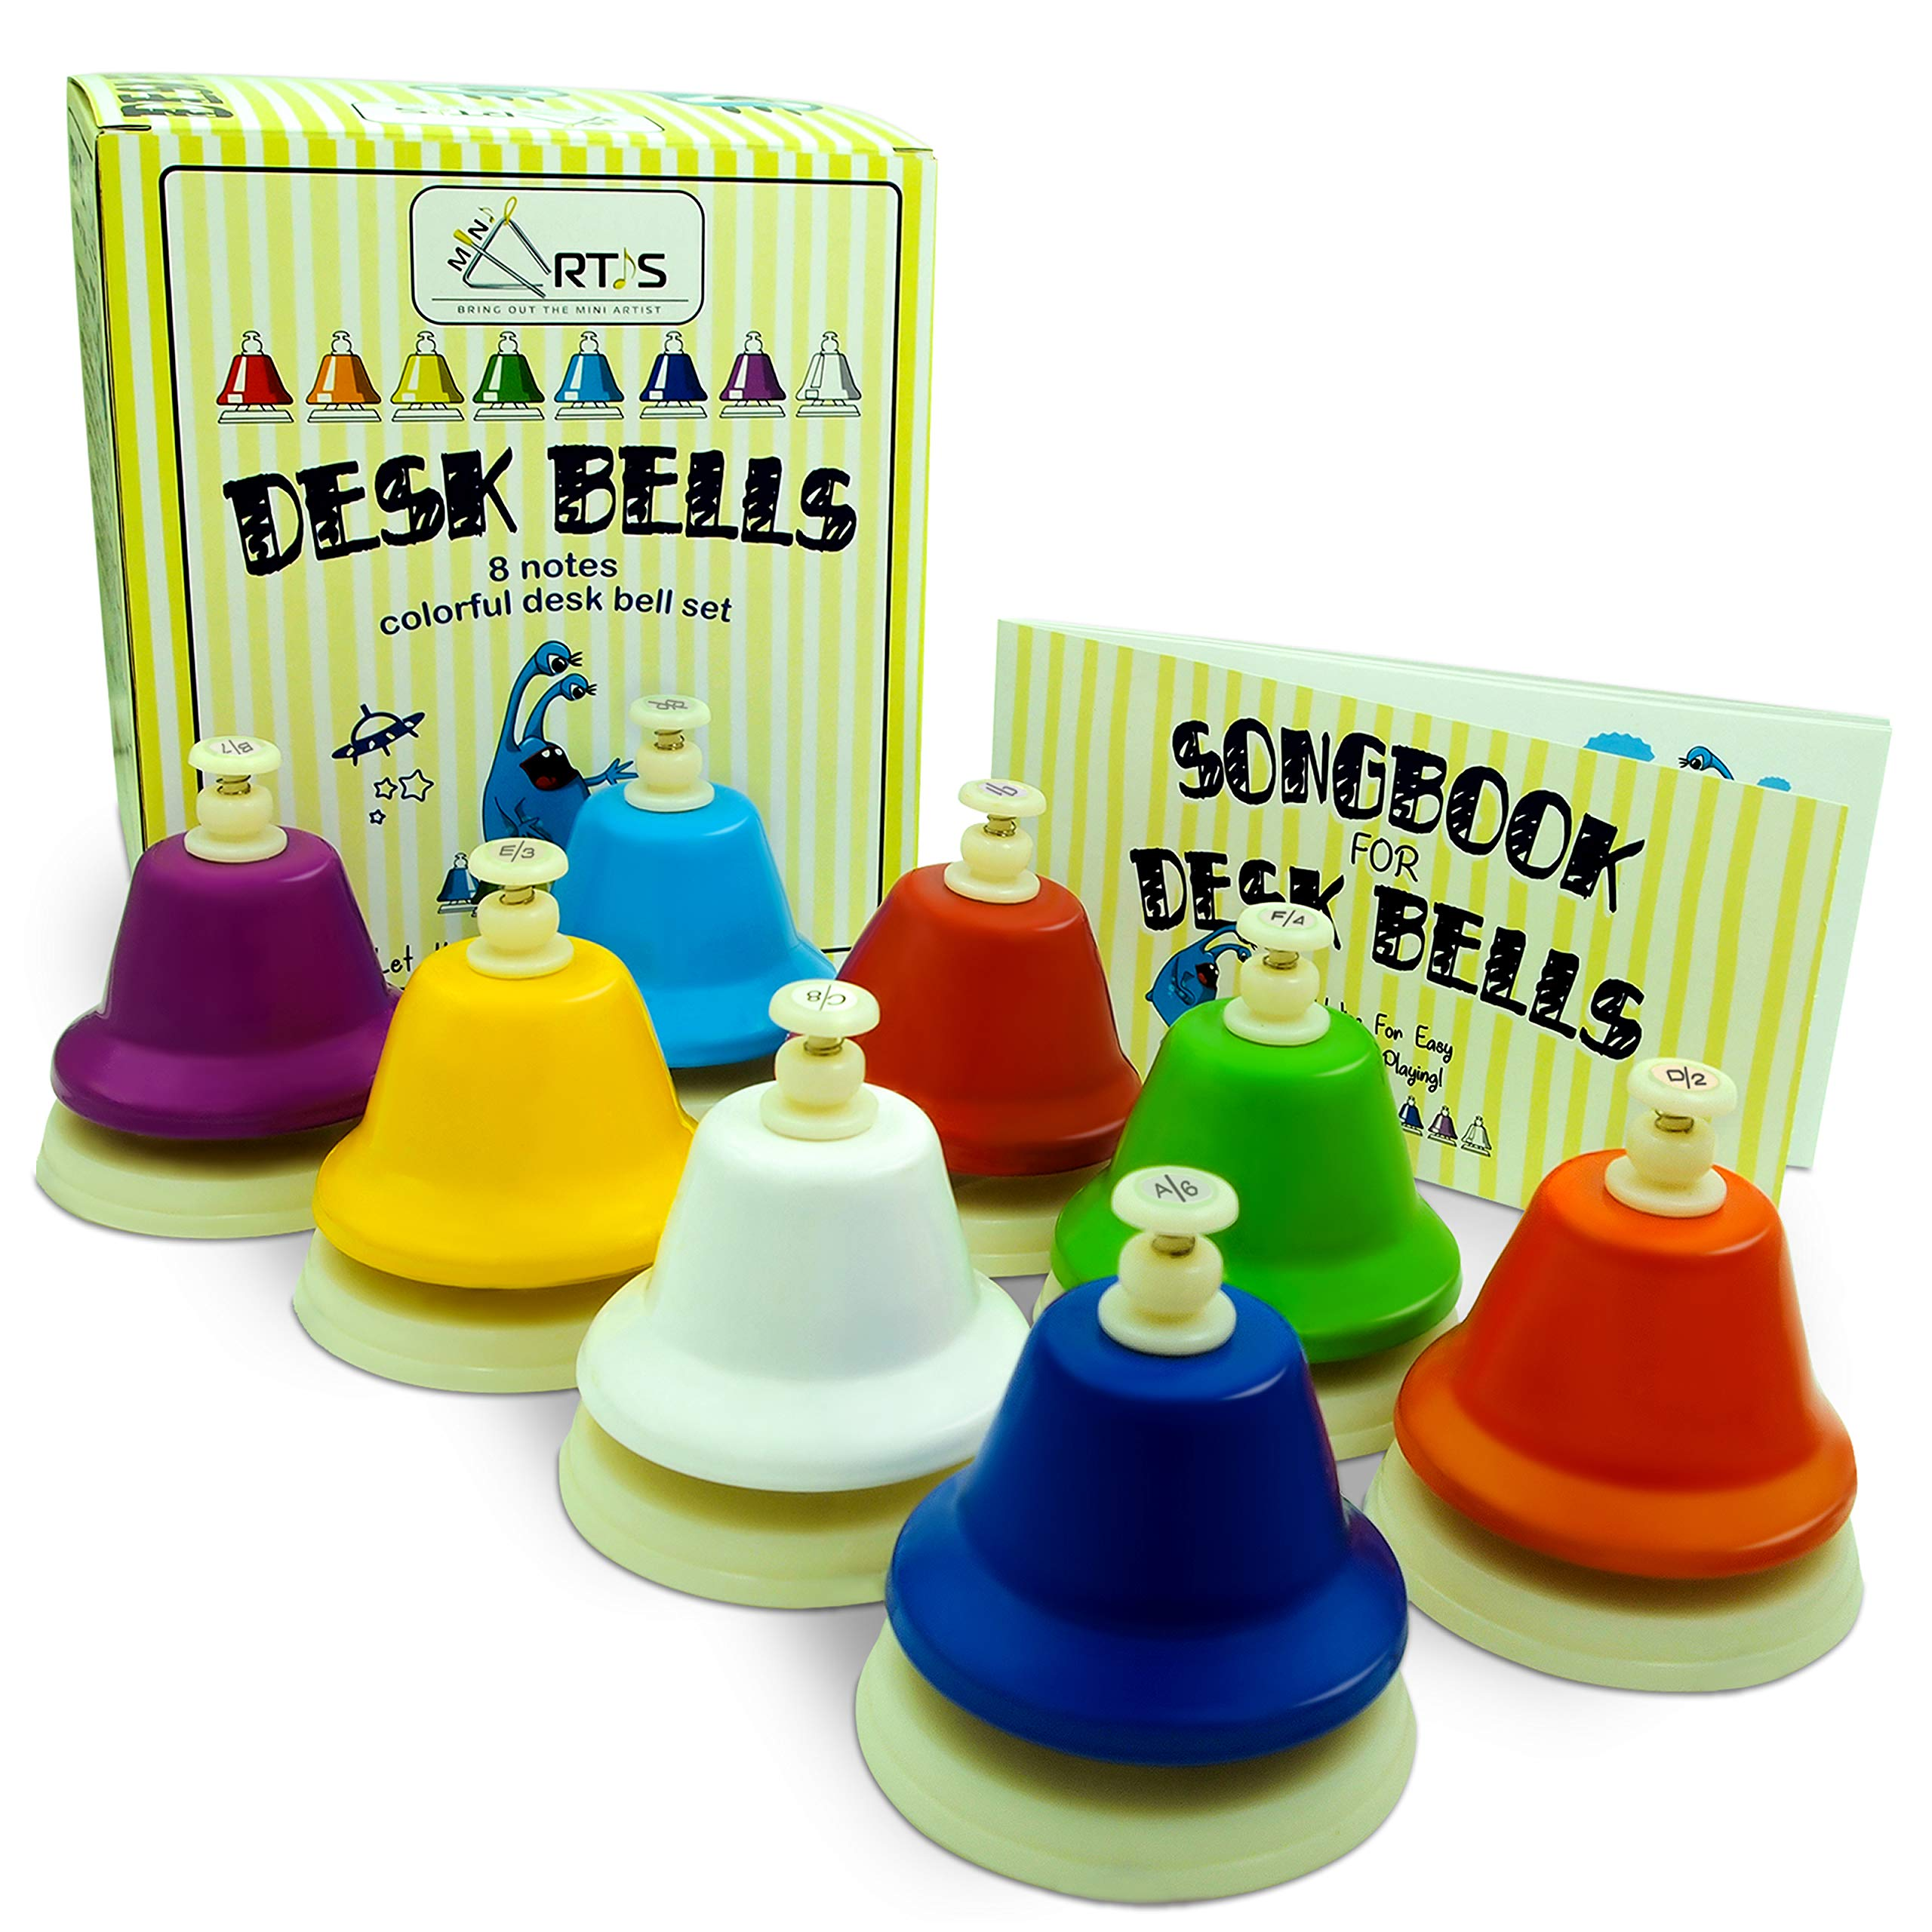 MiniArtis Desk Bells Set for Kids | 8 Notes Diatonic Colorful Metal Hand Bells | Hit on Top Feature | Musical Songbook & Carry Case Included | Great Holiday Birthday Gift for Children by MiniArtis